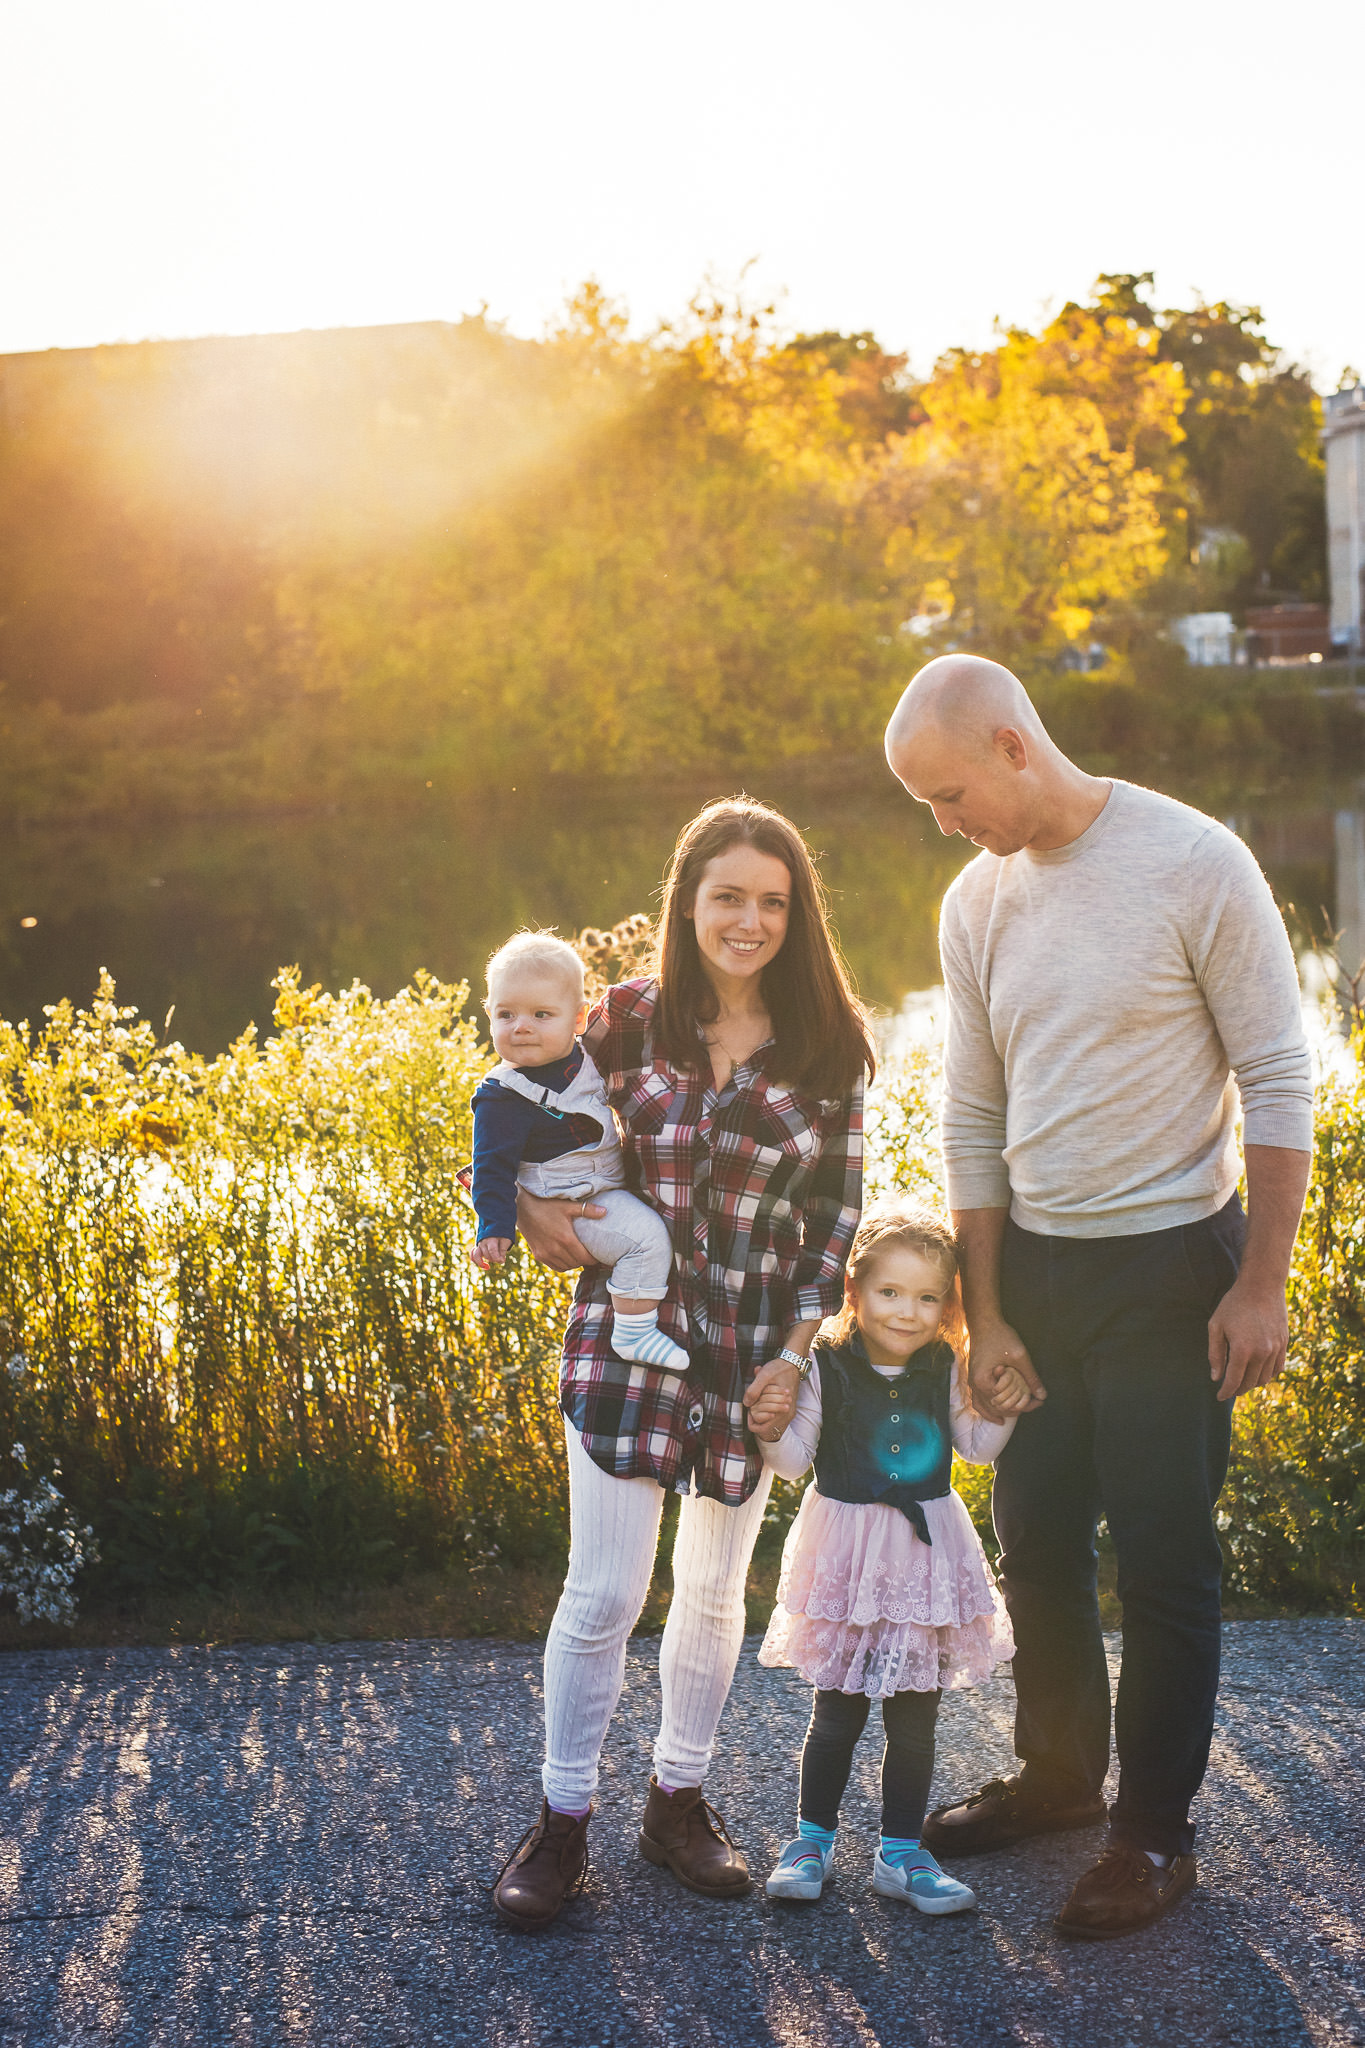 Family photography with young children with beautiful sunset